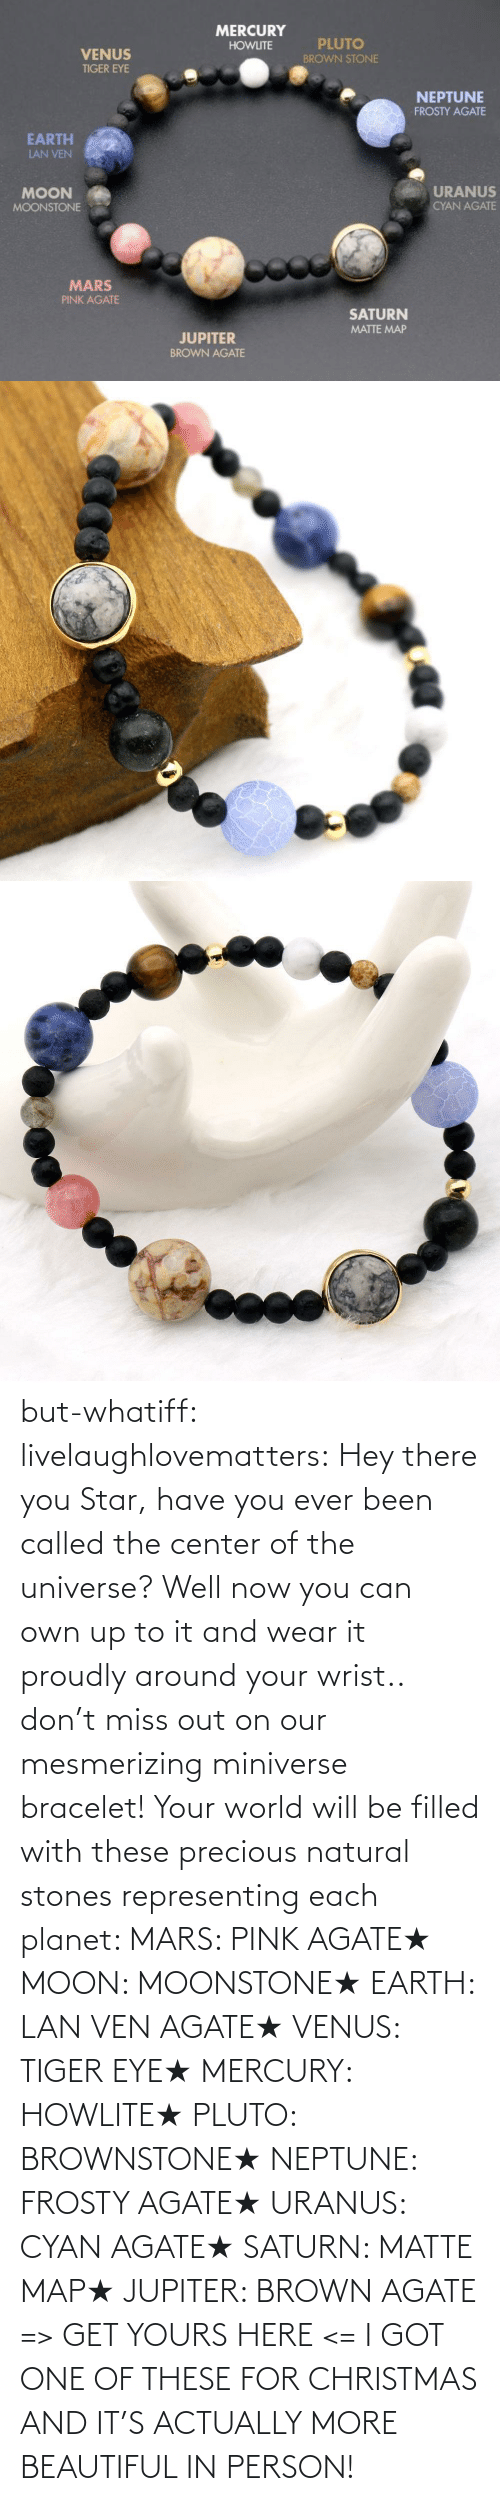 miss: but-whatiff:  livelaughlovematters:  Hey there you Star, have you ever been called the center of the universe? Well now you can own up to it and wear it proudly around your wrist.. don't miss out on our mesmerizing miniverse bracelet! Your world will be filled with these precious natural stones representing each planet:  MARS: PINK AGATE★ MOON: MOONSTONE★ EARTH: LAN VEN AGATE★ VENUS: TIGER EYE★ MERCURY: HOWLITE★ PLUTO: BROWNSTONE★ NEPTUNE: FROSTY AGATE★ URANUS: CYAN AGATE★ SATURN: MATTE MAP★ JUPITER: BROWN AGATE => GET YOURS HERE <=  I GOT ONE OF THESE FOR CHRISTMAS AND IT'S ACTUALLY MORE BEAUTIFUL IN PERSON!